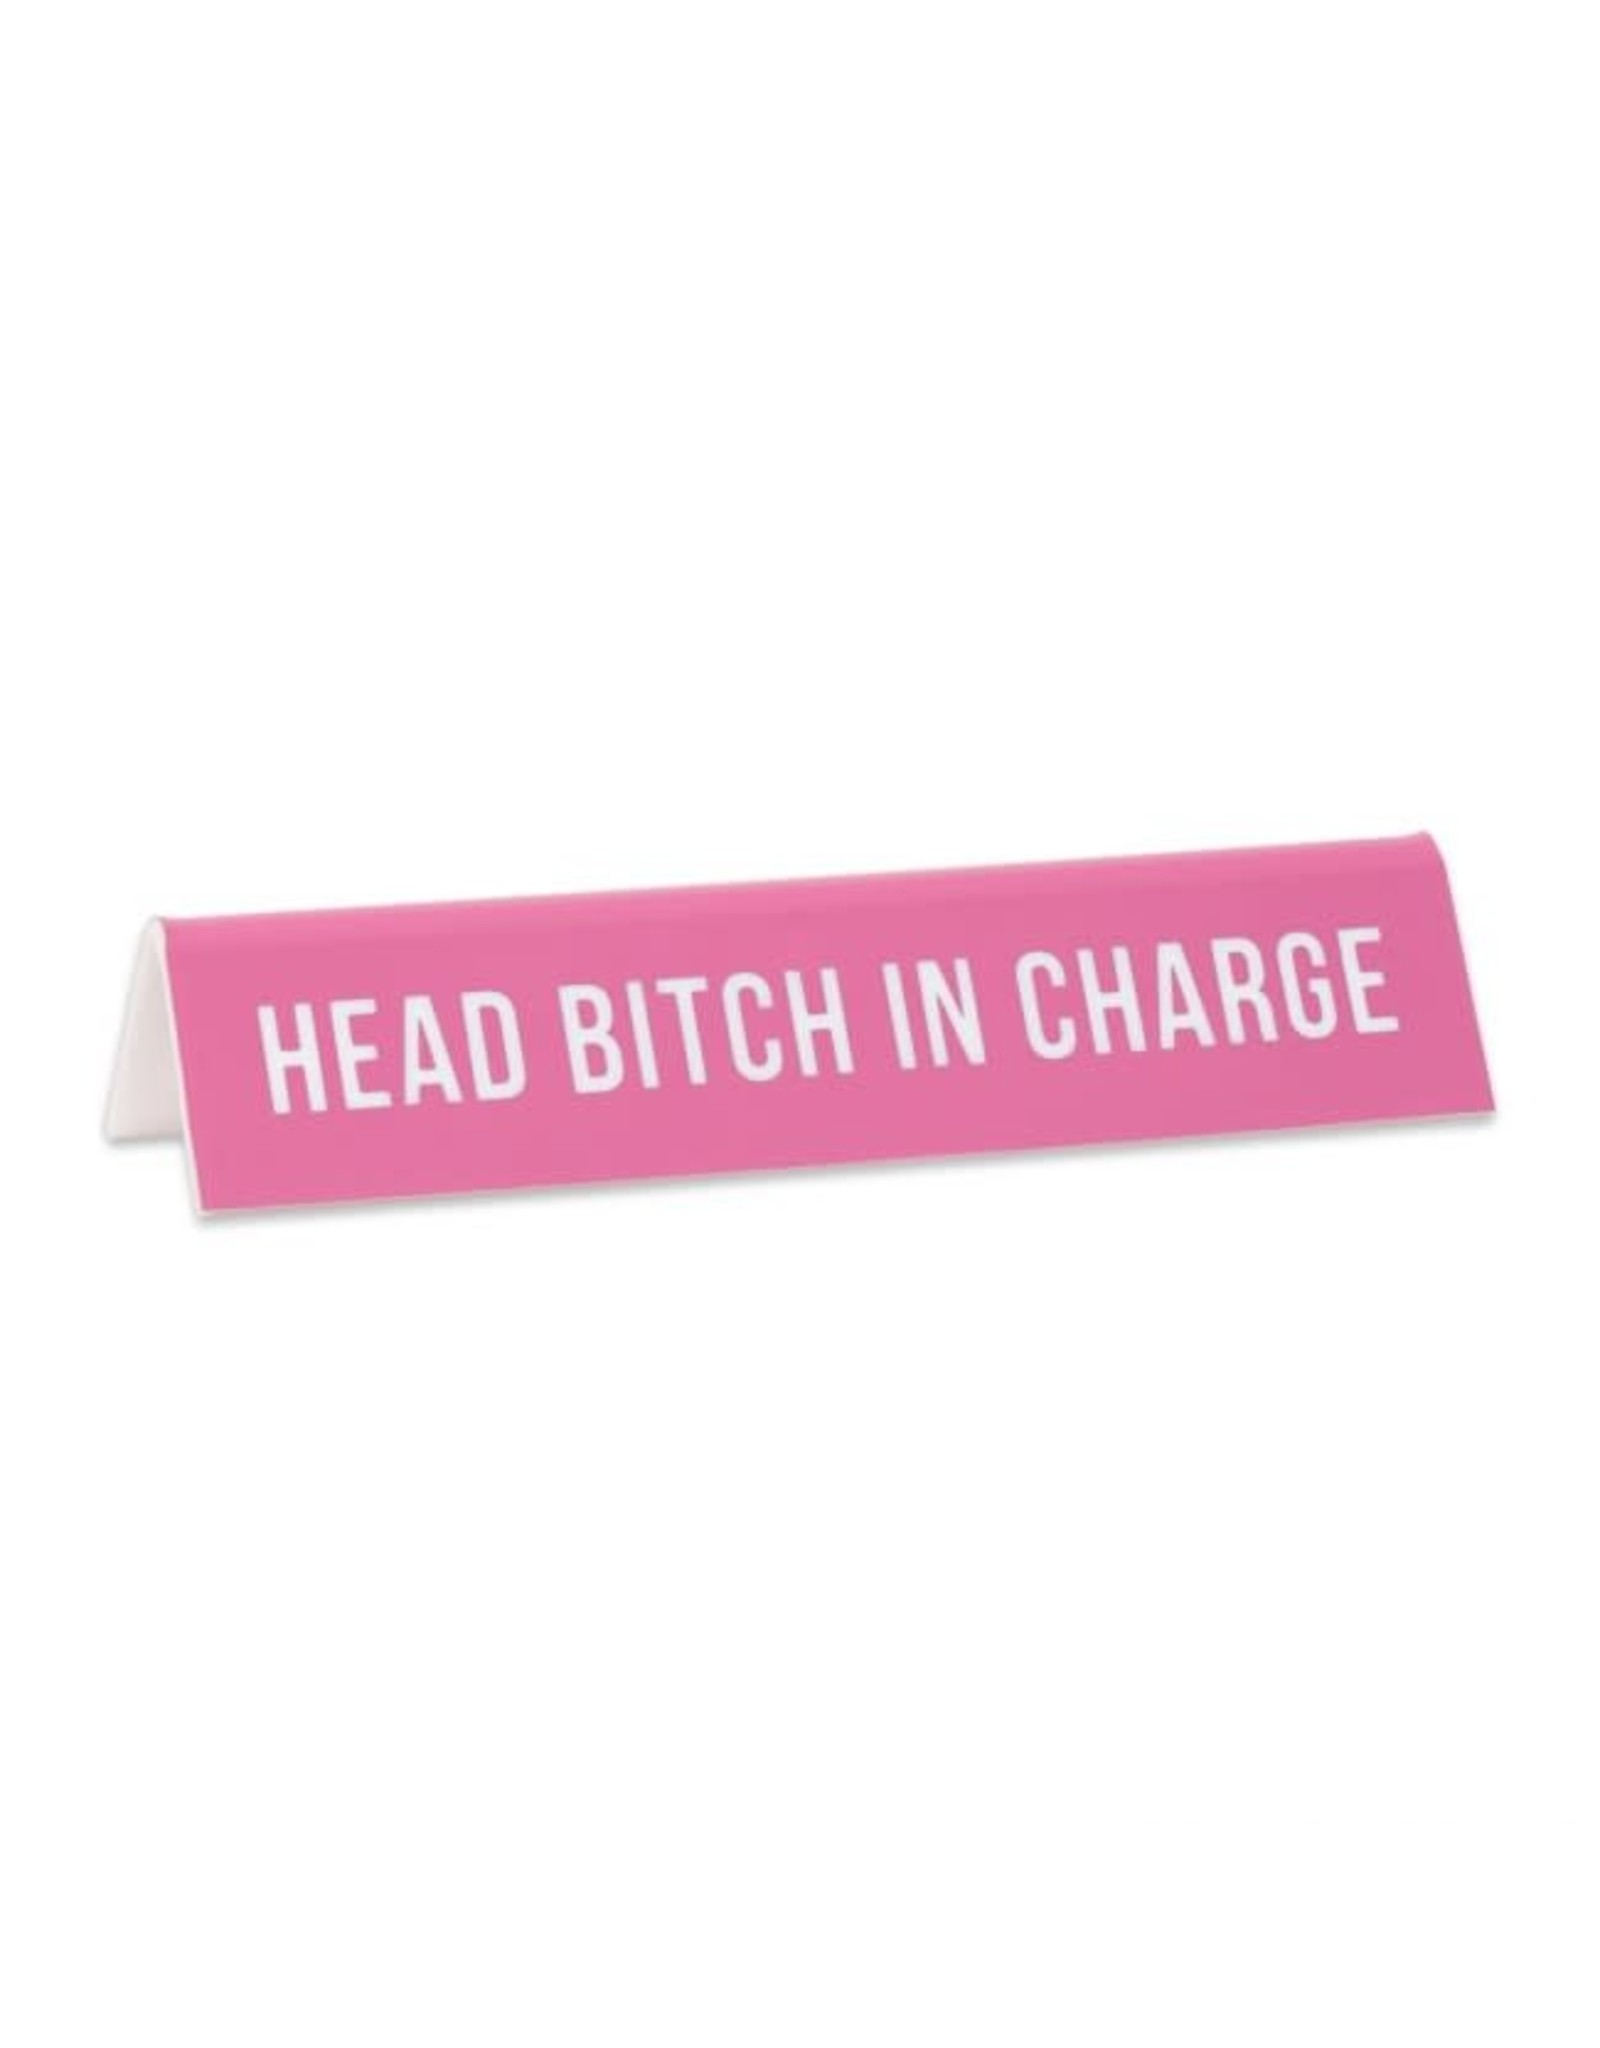 THE FOUND THE FOUND HEAD BITCH IN CHARGE DESK SIGN